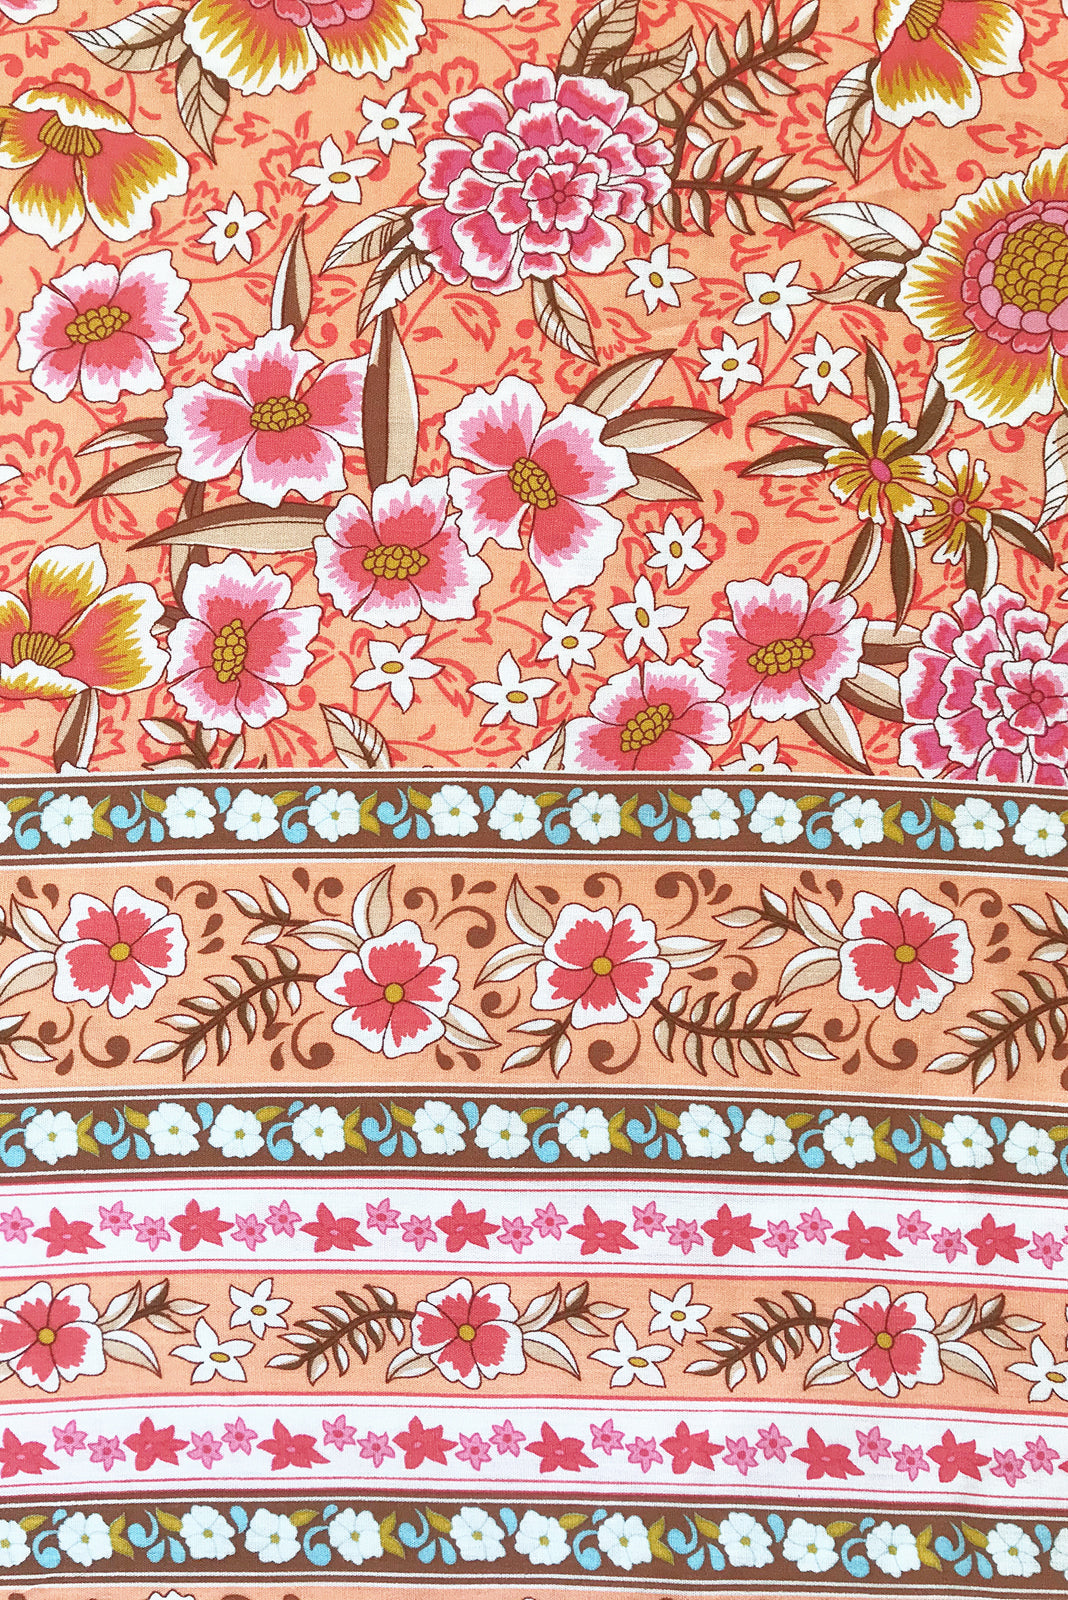 Fabric Swatch pf Juniper Peach Sandrine Maxi Dress featuring 100% viscose in pale orange base with vintage floral print.